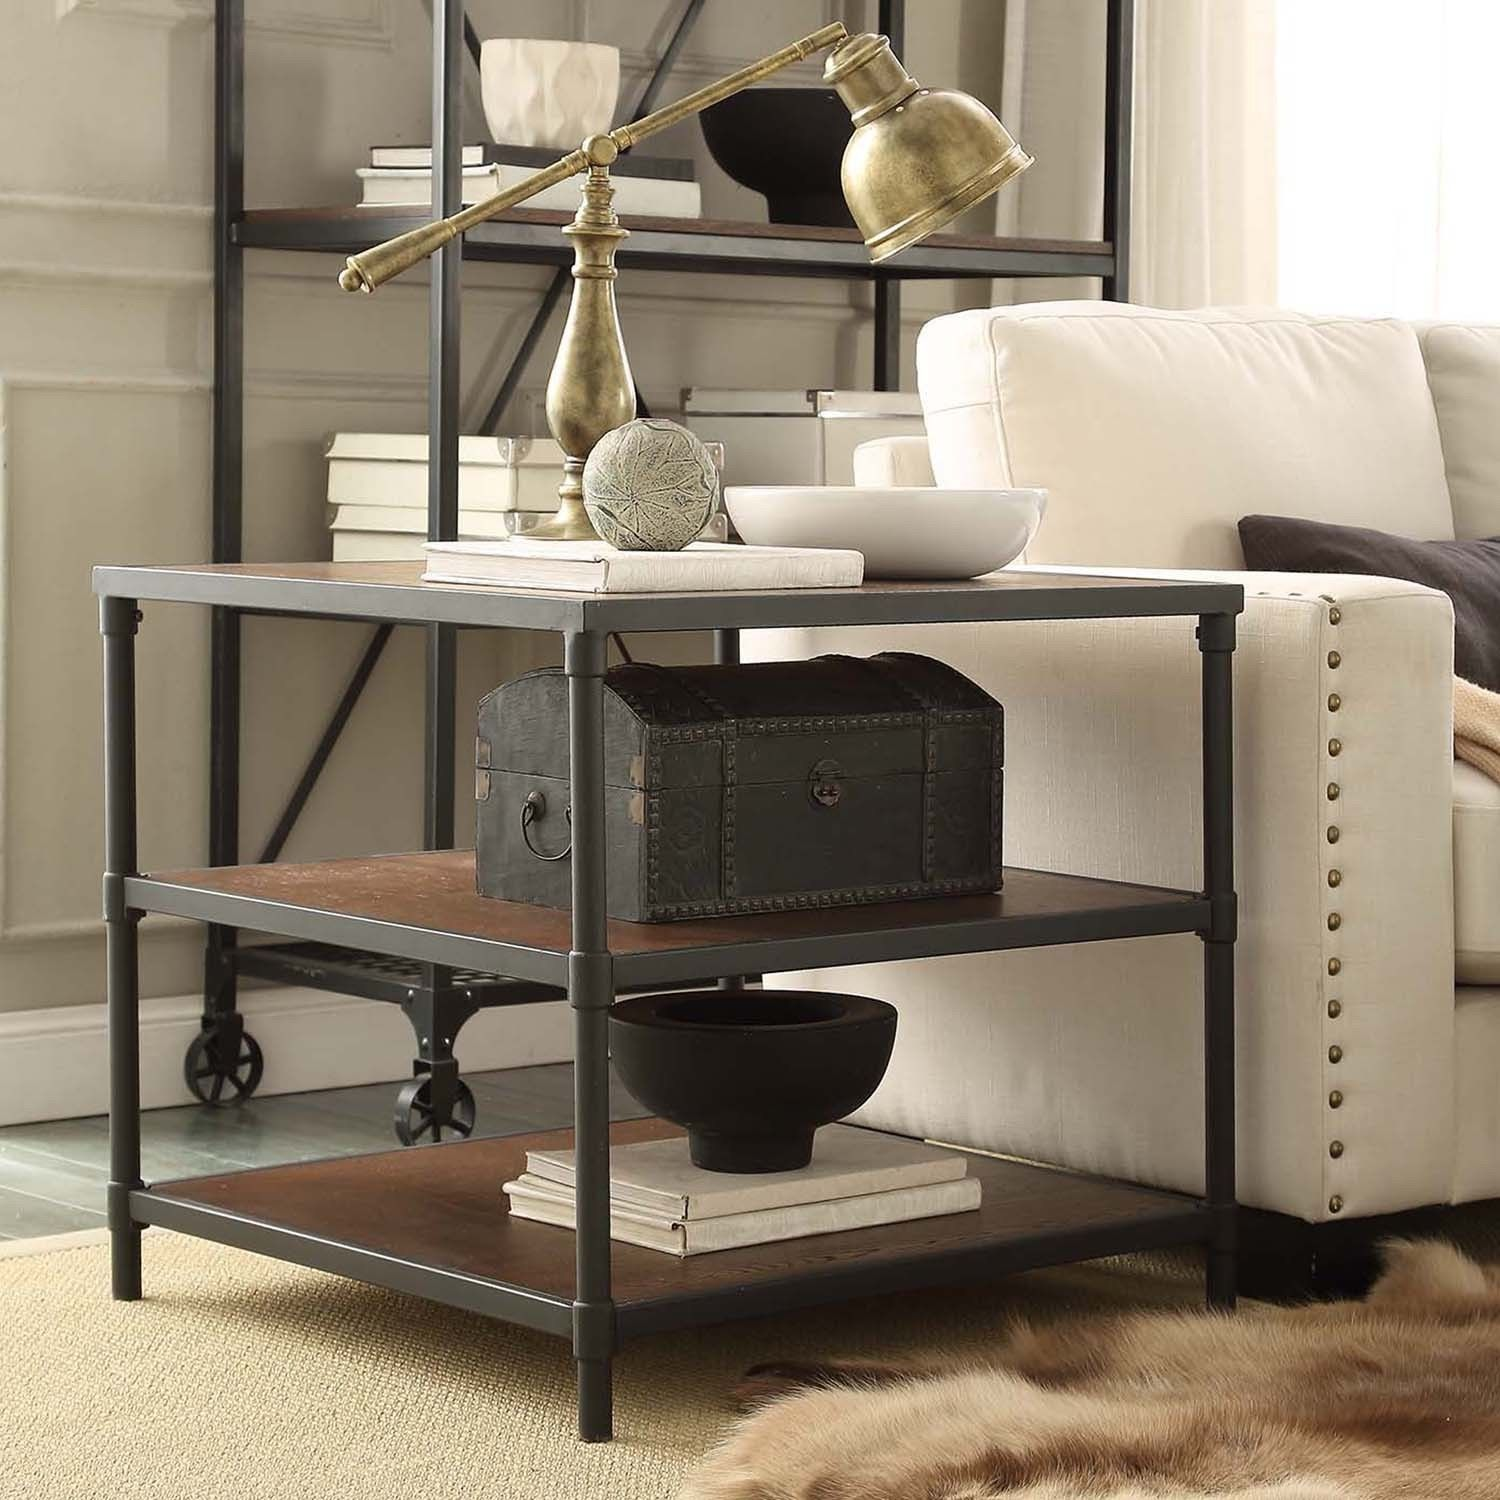 Inspire Q Harrison Industrial Rustic Pipe Frame Accent End Table